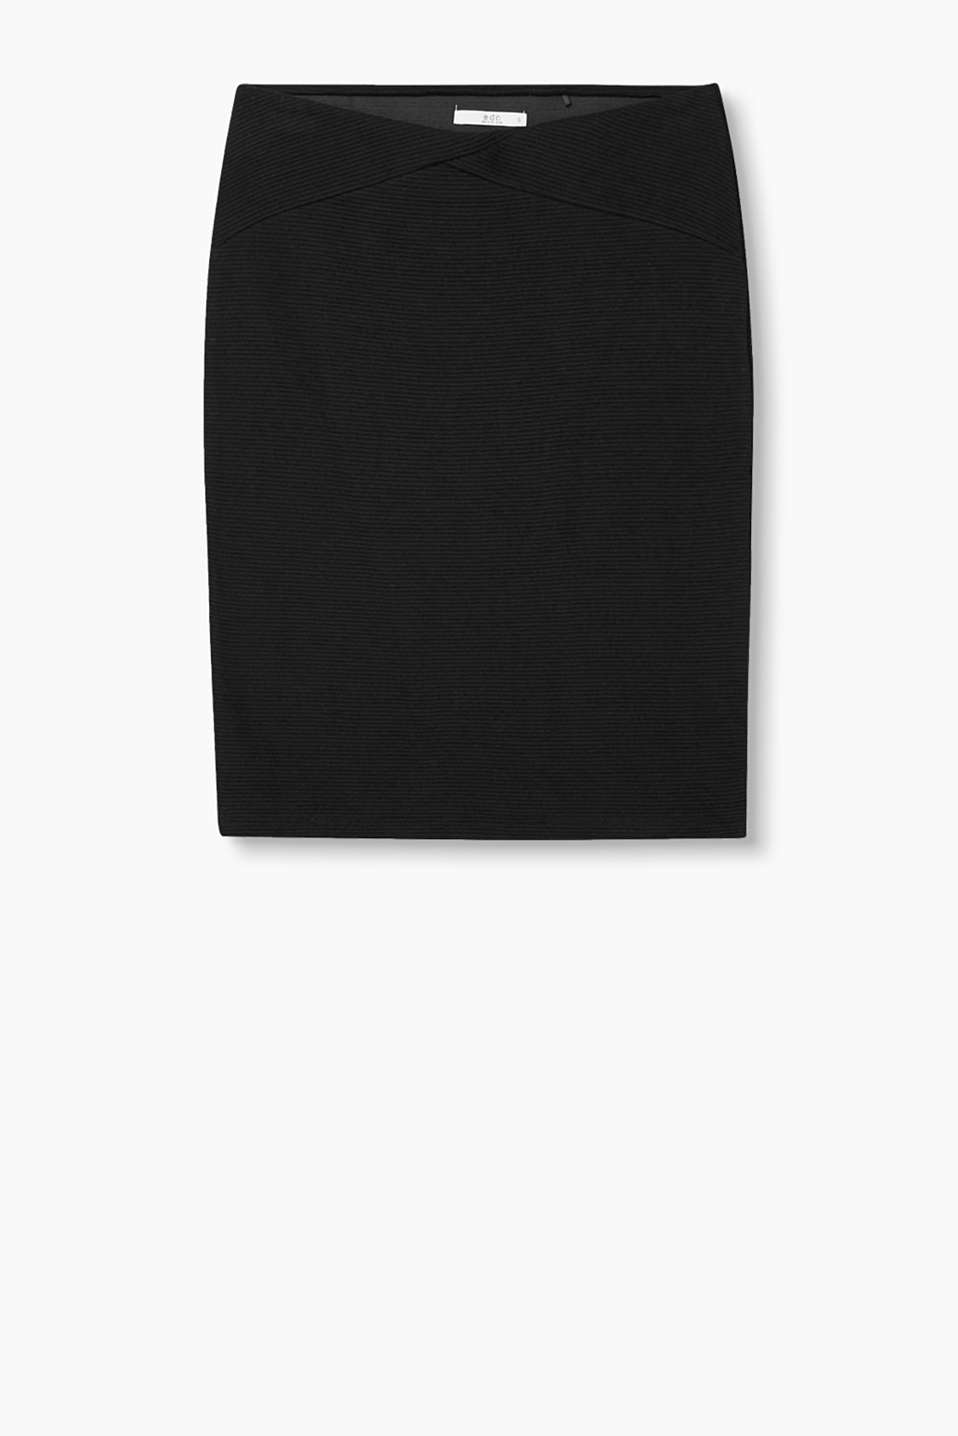 Cotton jersey pencil skirt with a horizontal ribbed texture